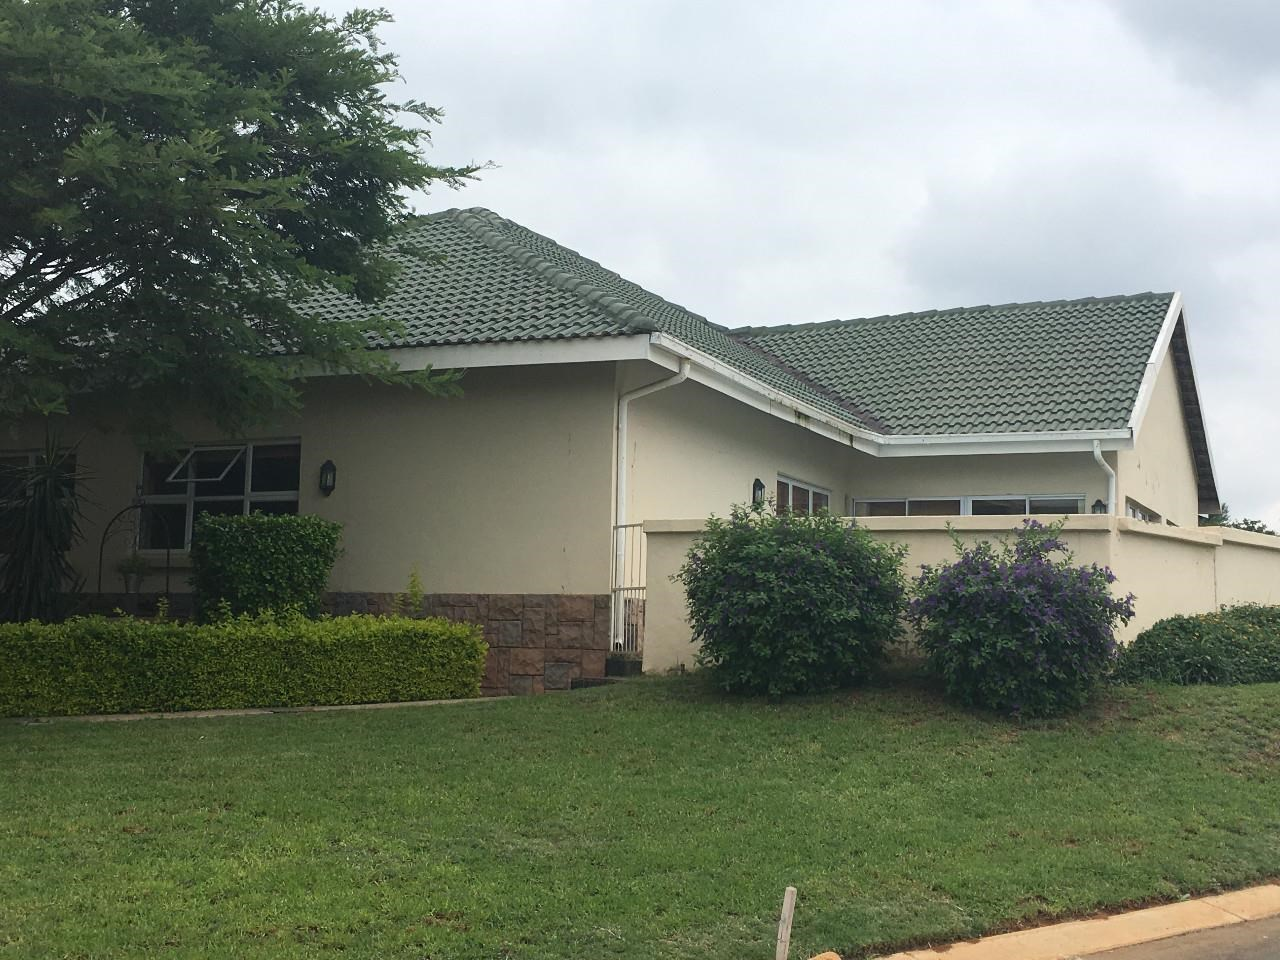 4 Bedroom House for Sale in Wigwam